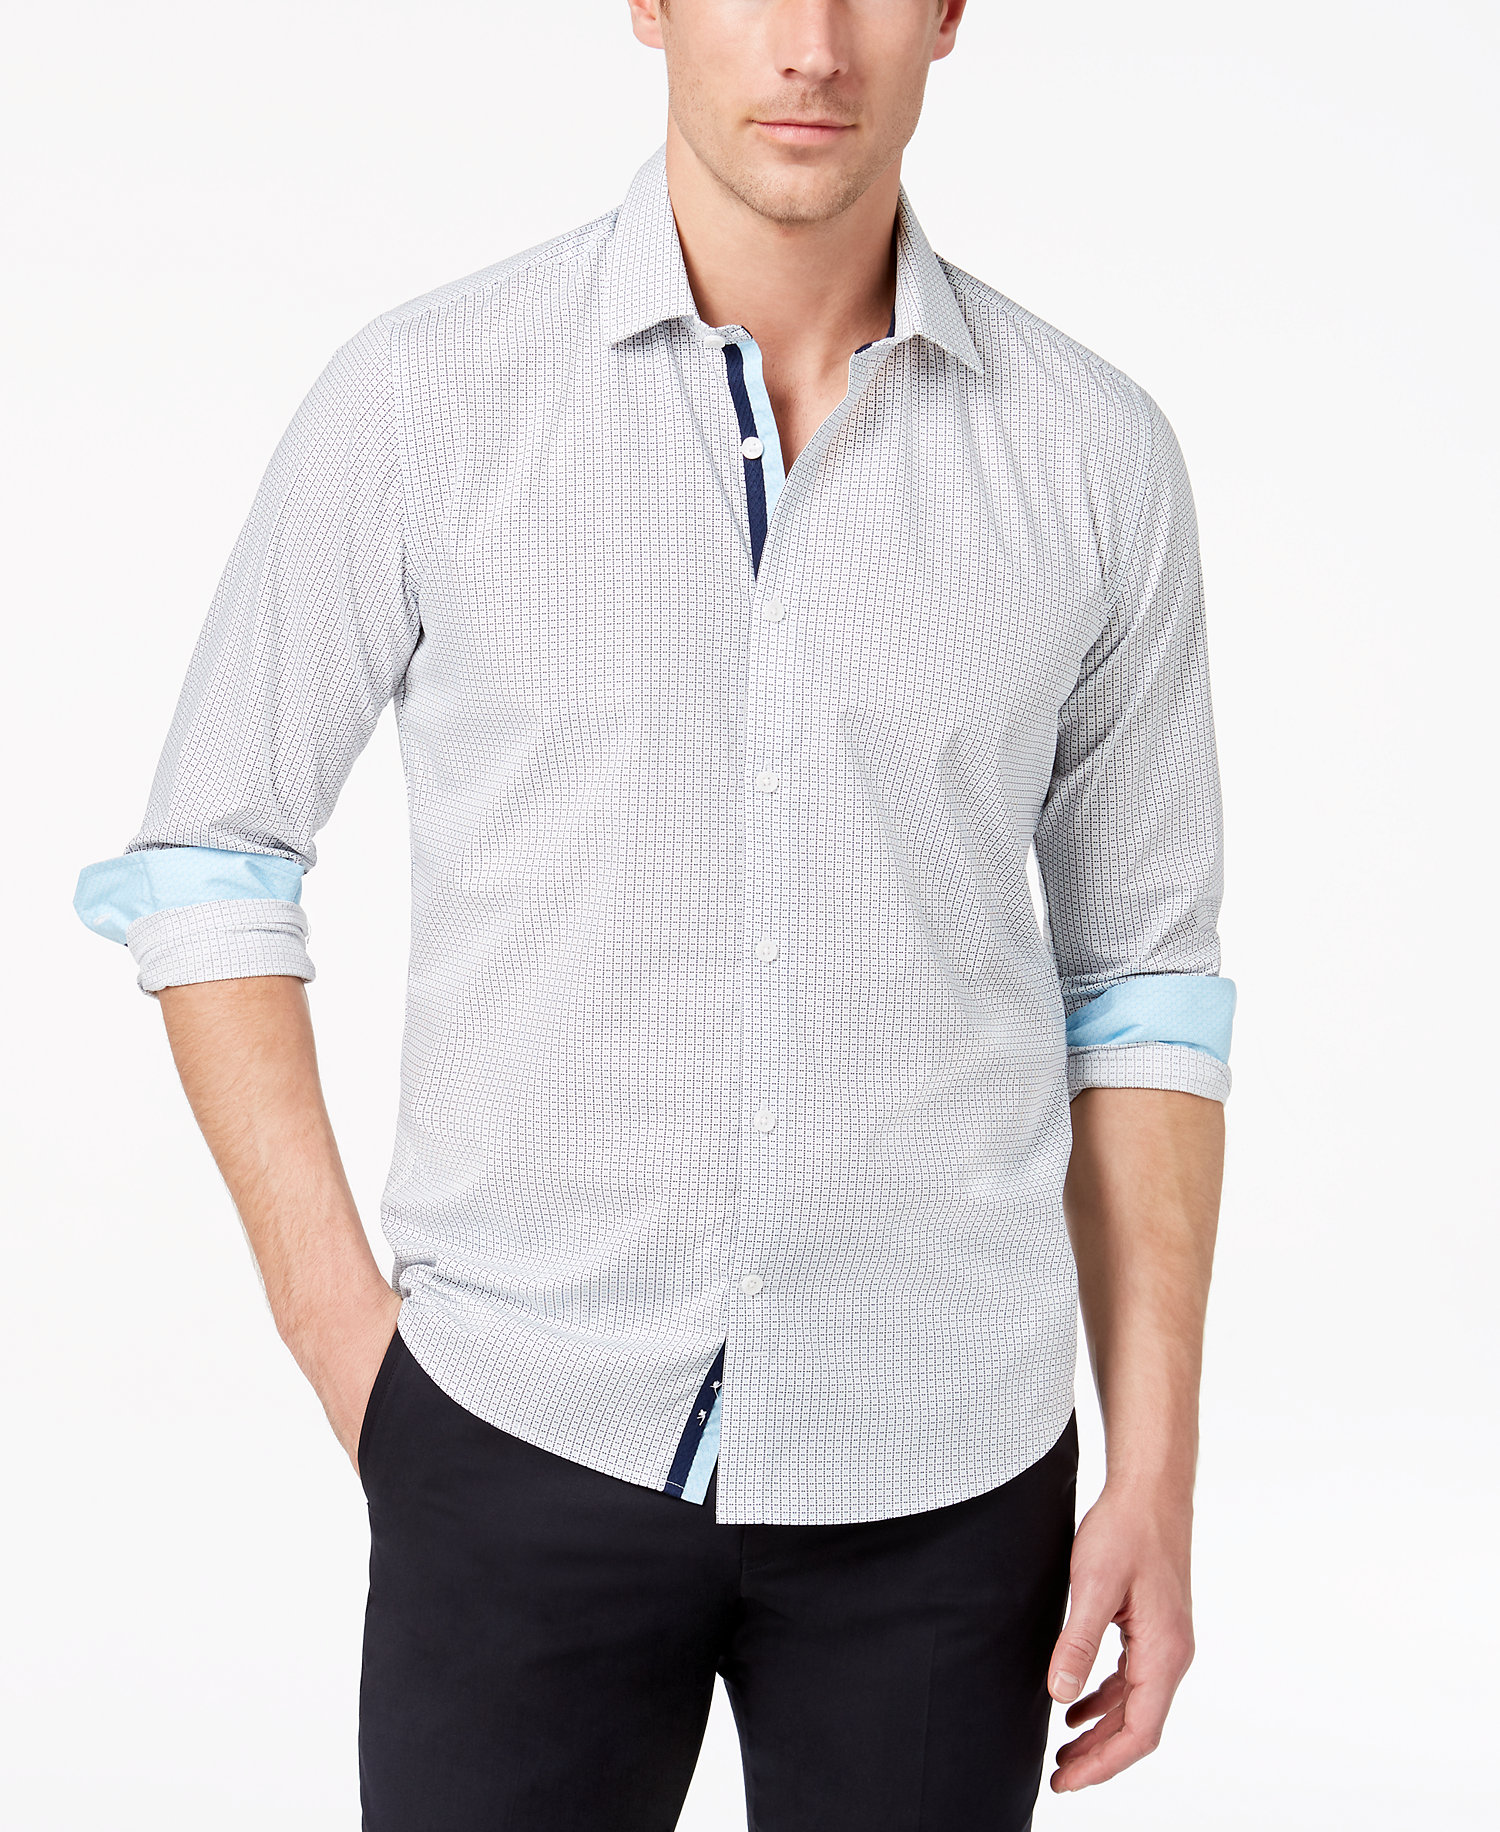 Mens SlimFit GeoPrint Shirt Created for Macys Ryan Seacrest Distinction White Geo Print 5739554 UXZQLIJ.jpg